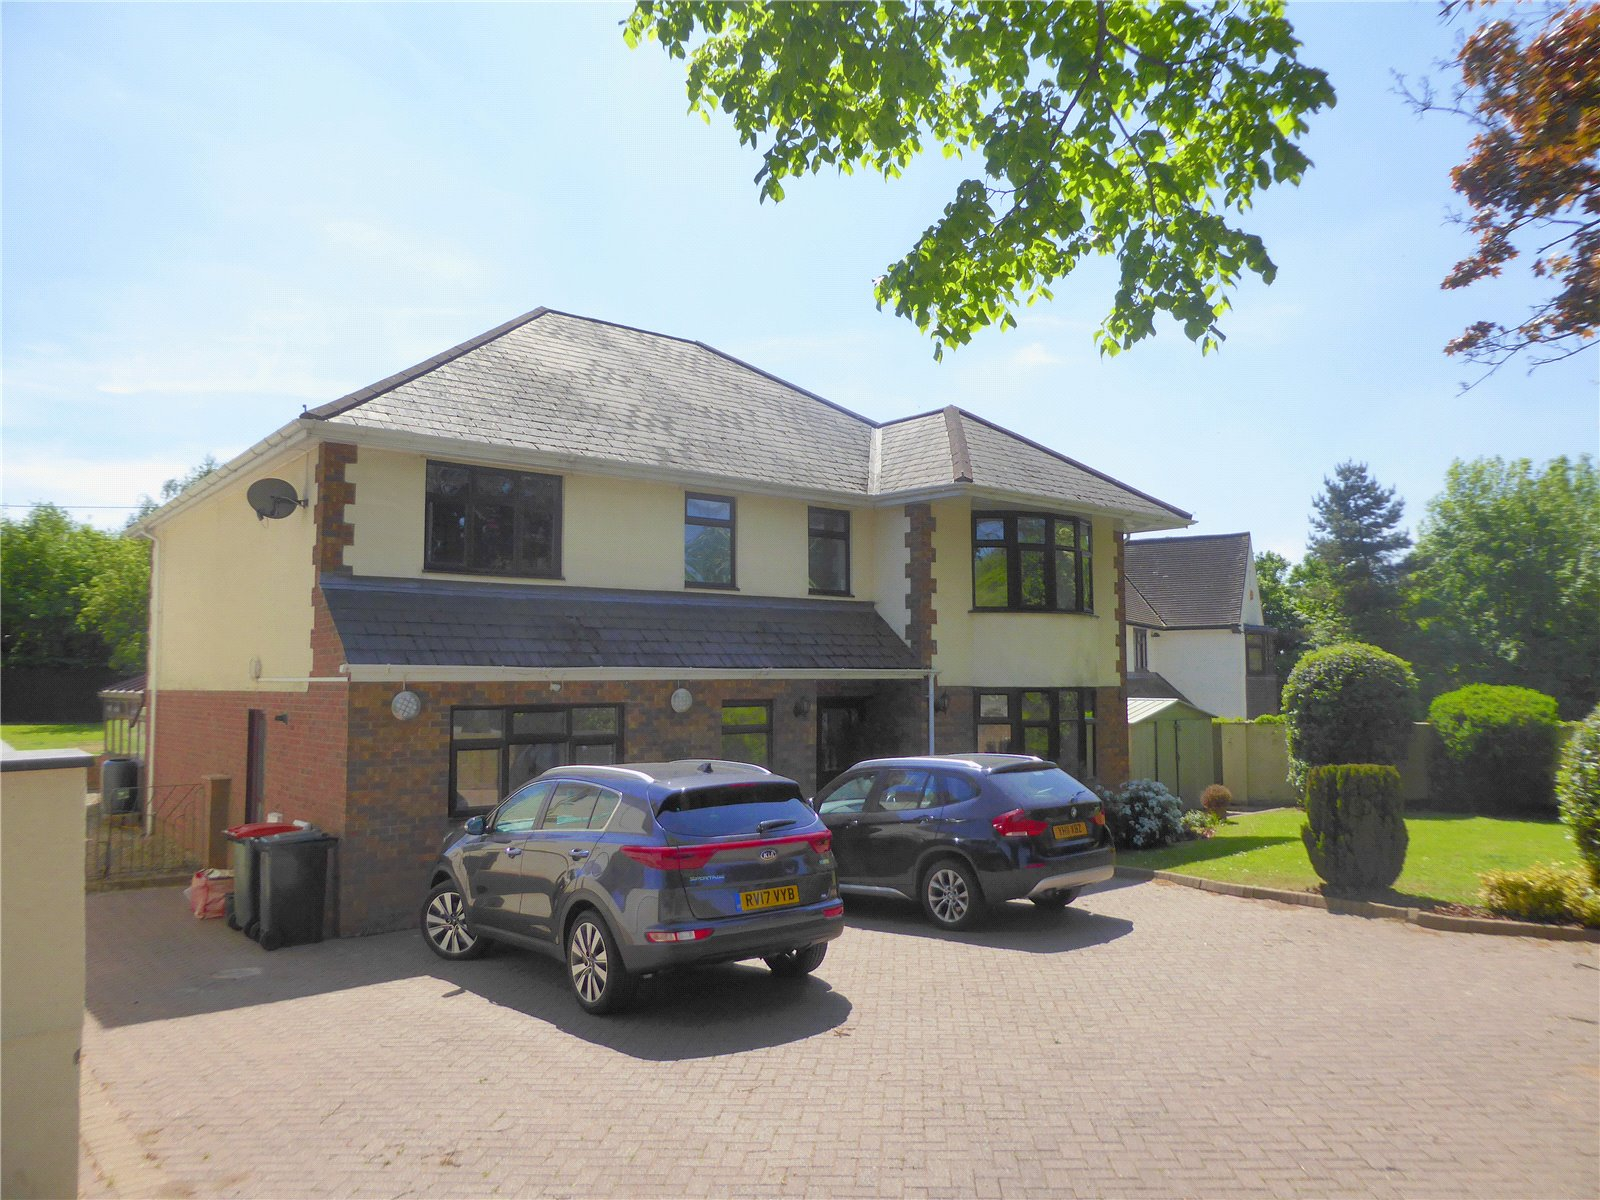 4 Bedrooms Detached House for sale in Chepstow Road Langstone Newport NP18